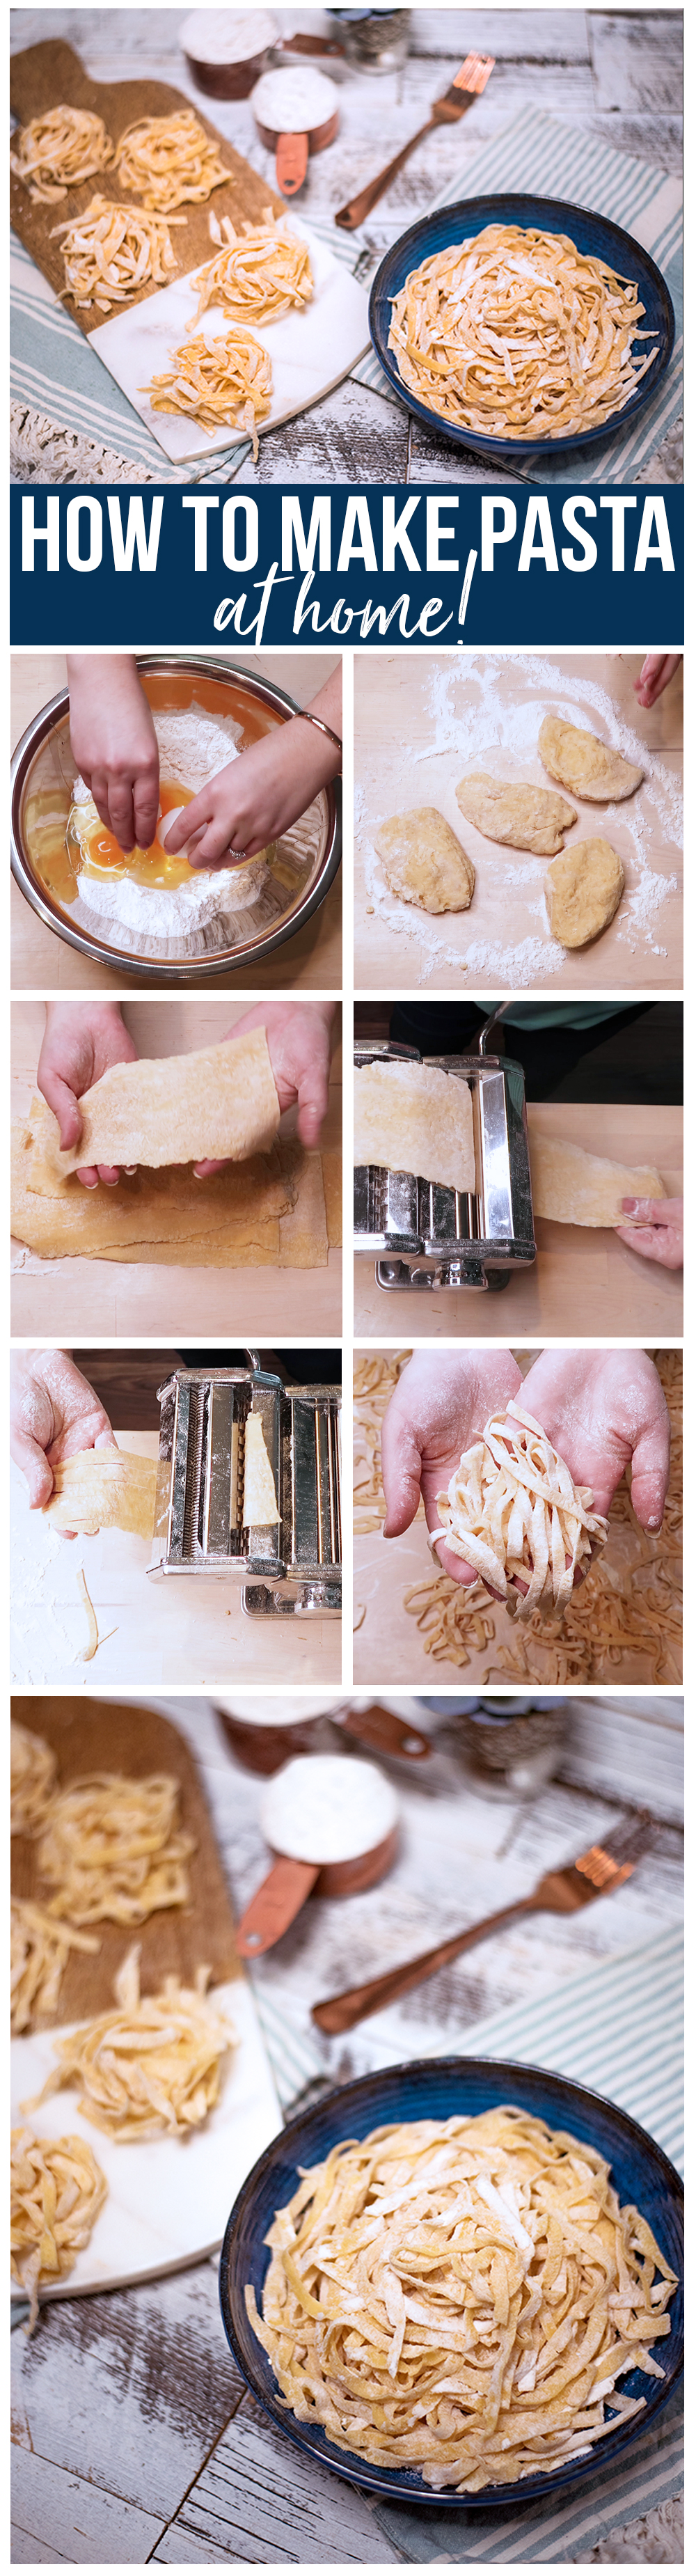 How to make pasta at home - so easy!